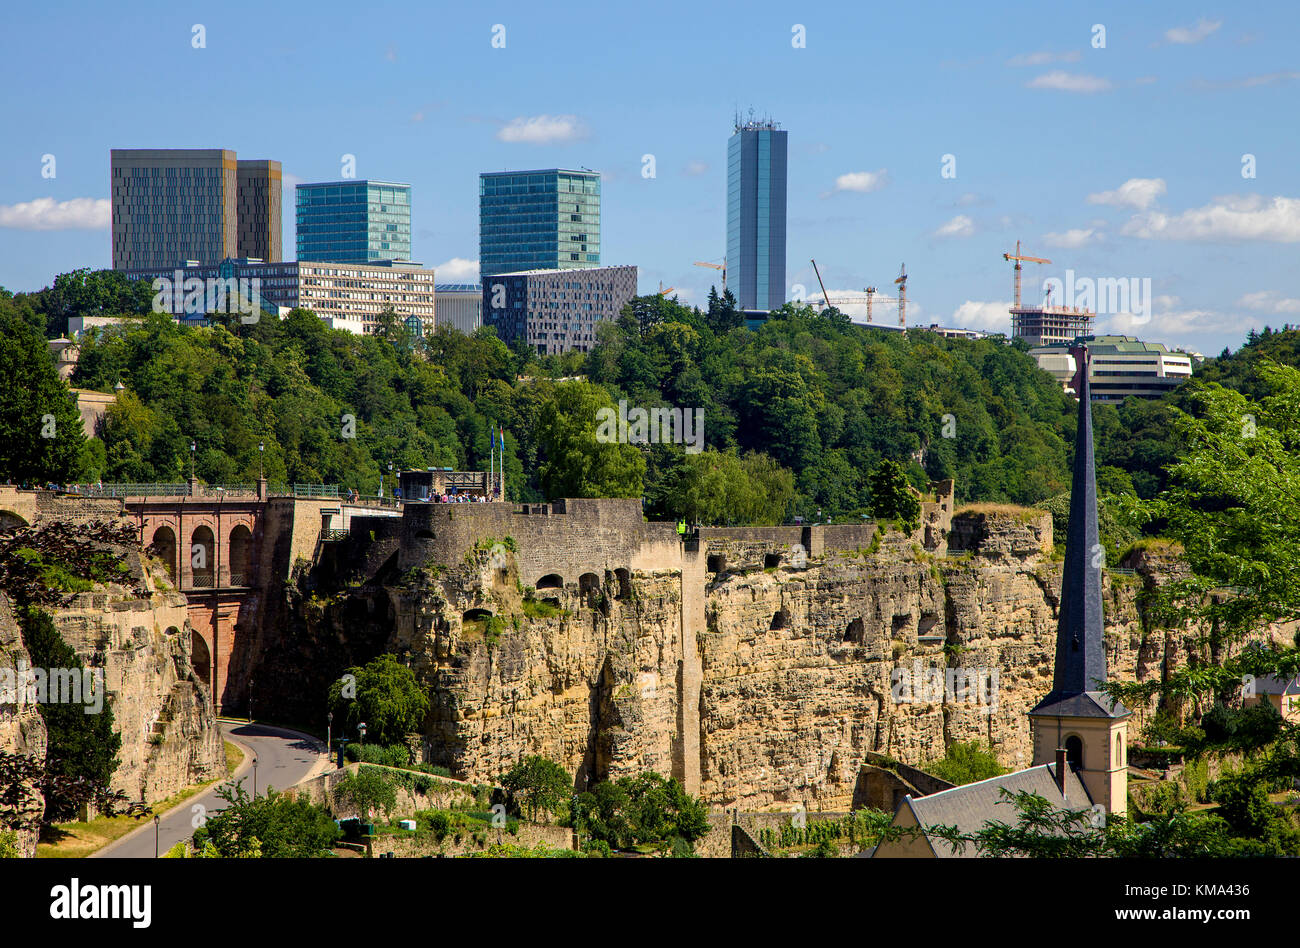 View on Rham-Plateau and St. Johannes church, behind the europe quarter, finance district on Kirchberg, Luxembourg - Stock Image